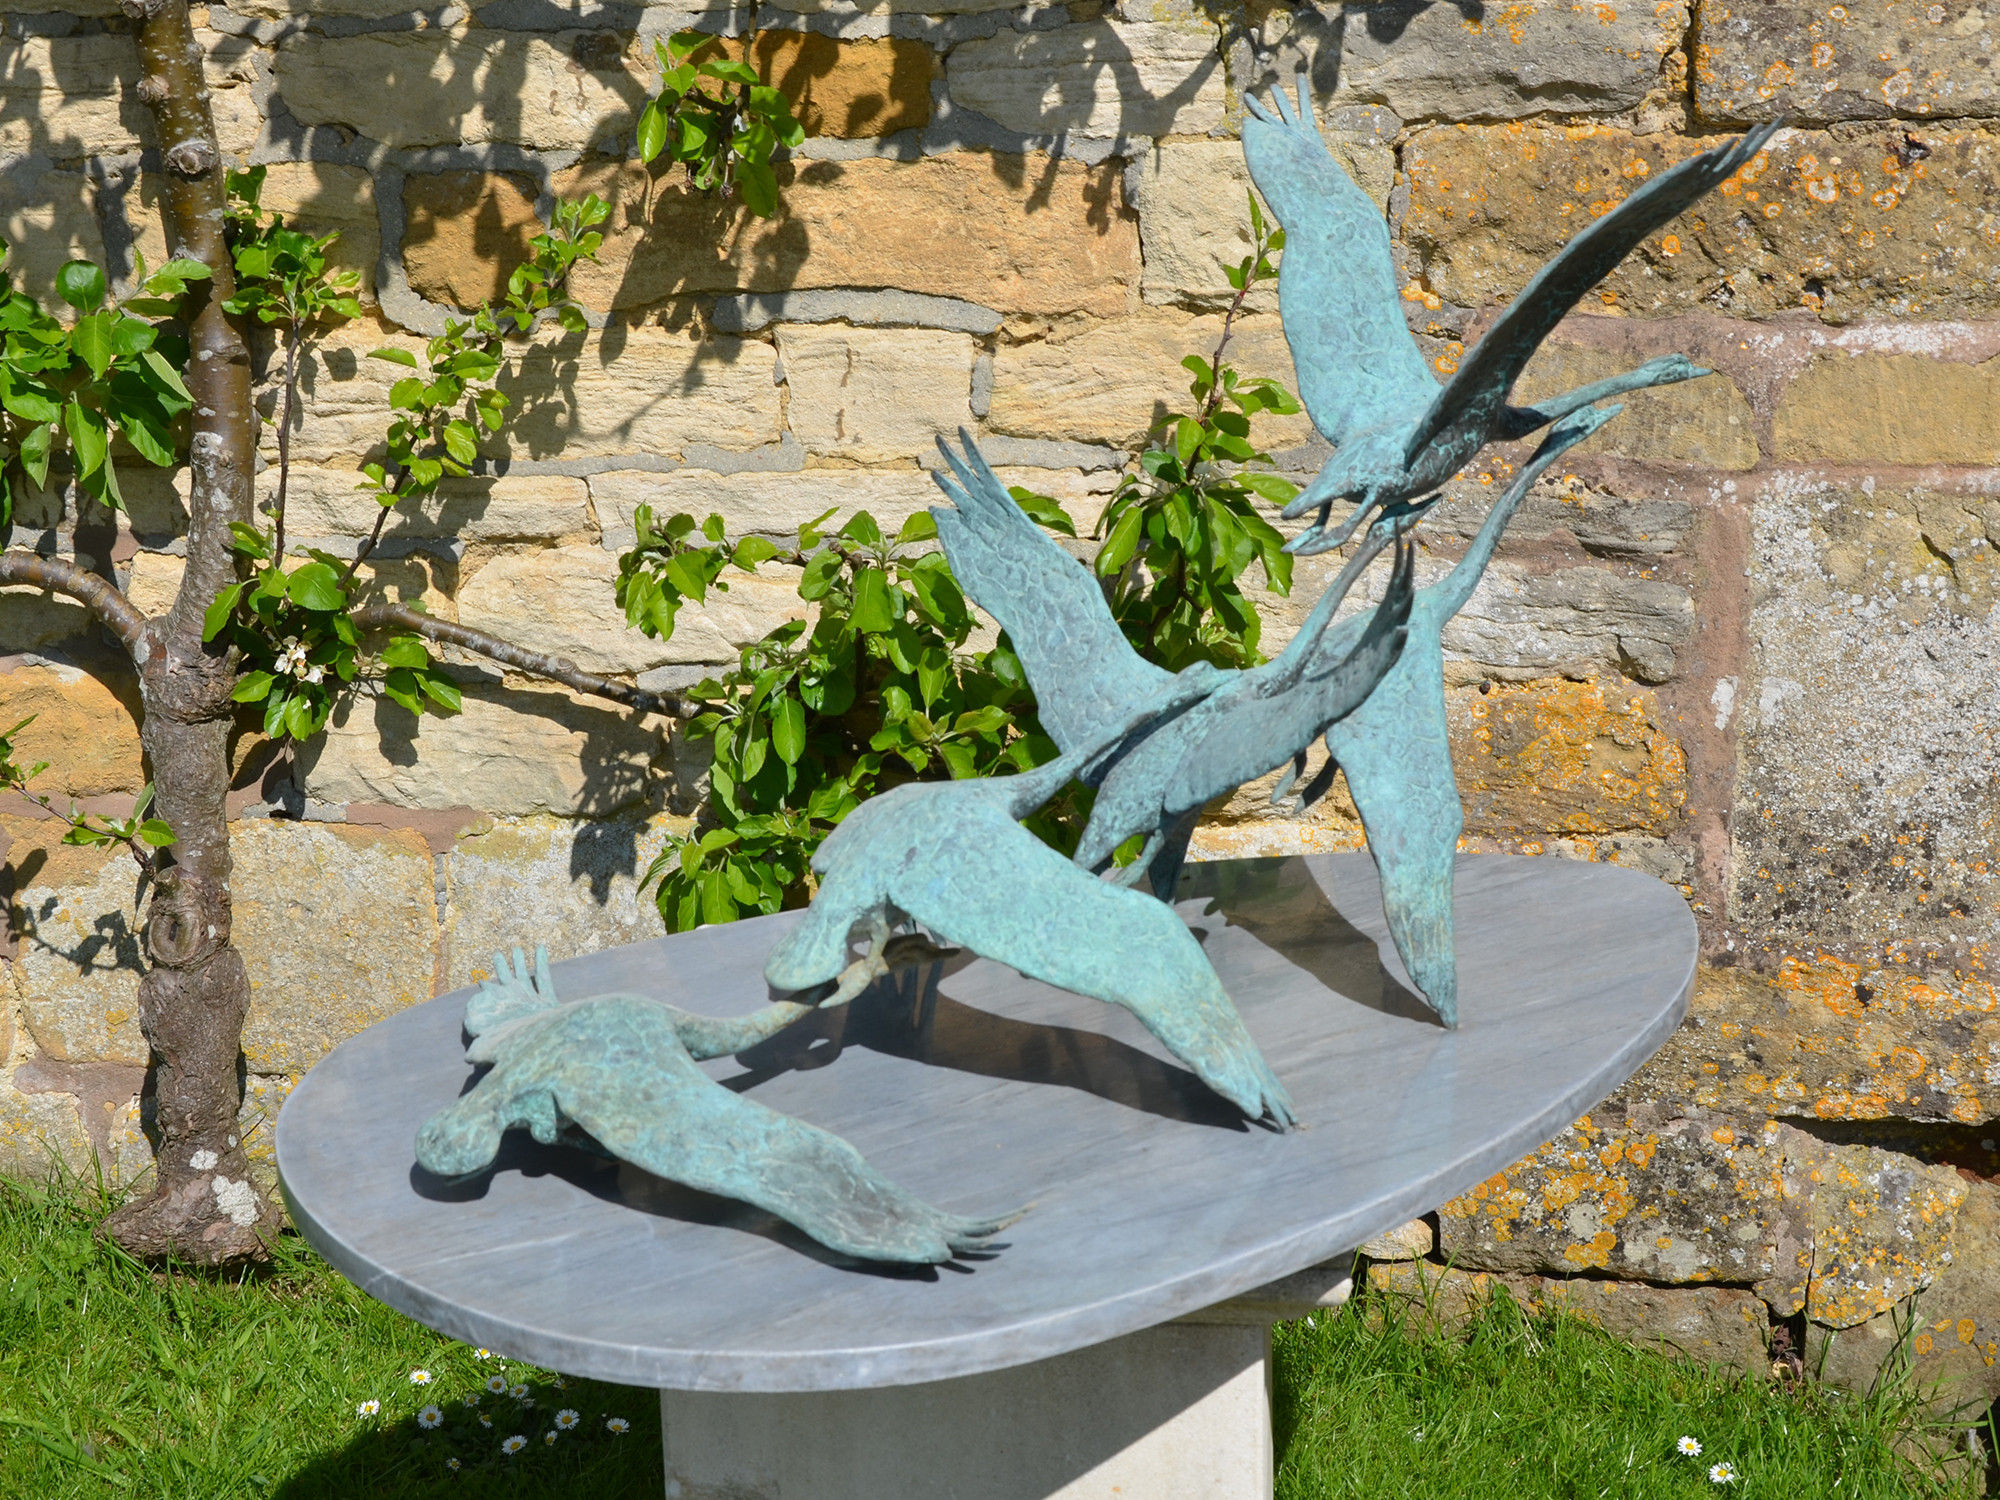 'Flying Swans' By David Wynne OBE (1926 – 2014)